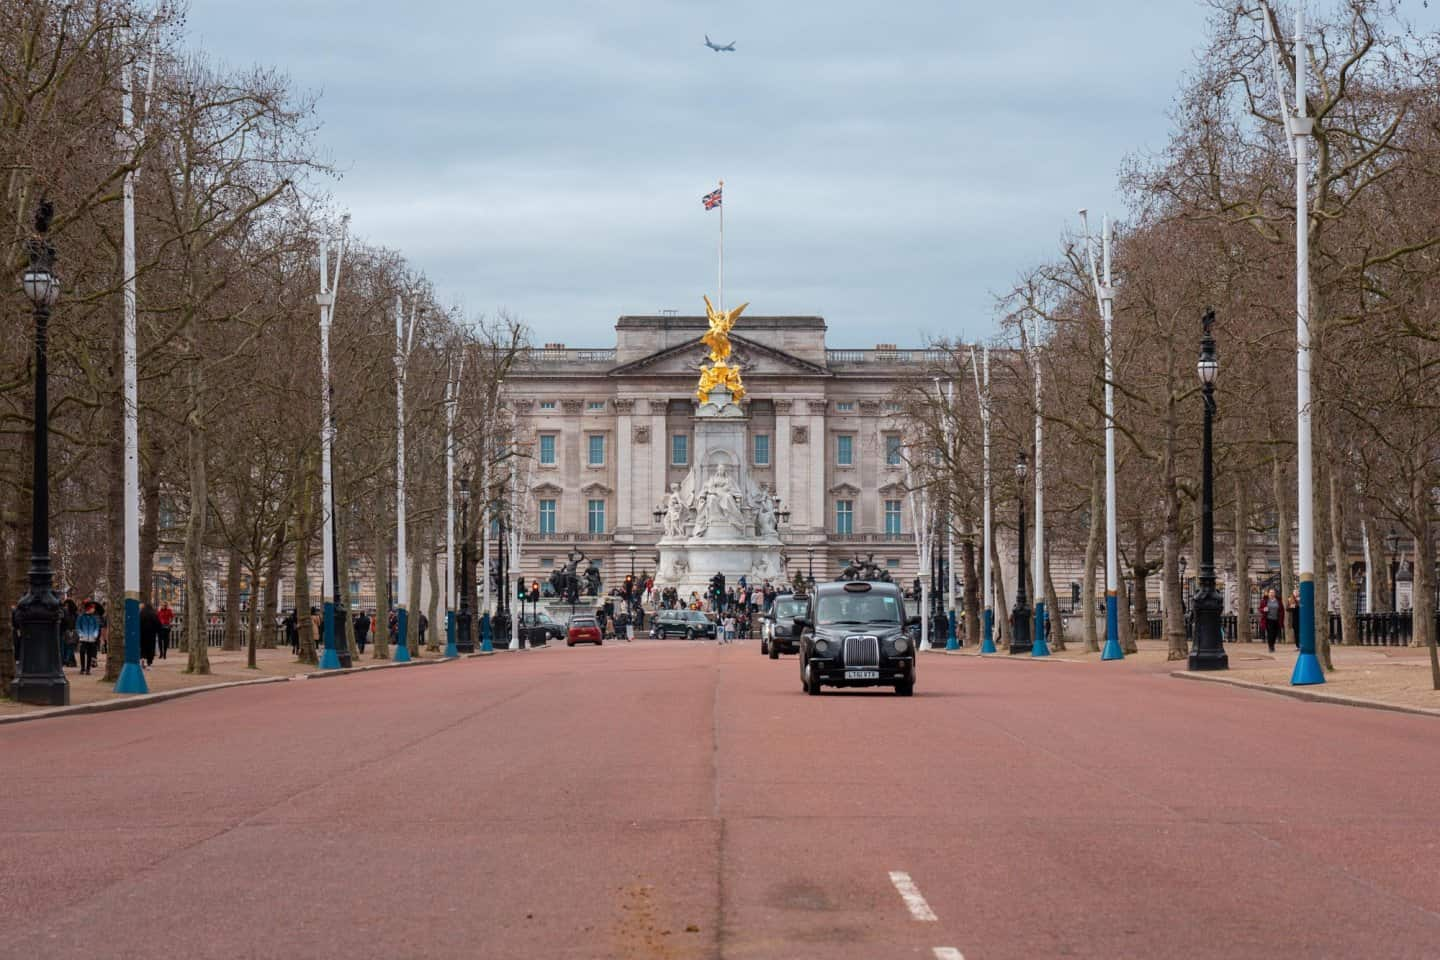 The Mall street in London resembles a giant red carpet and shouldn't be missed on your London bucket list.